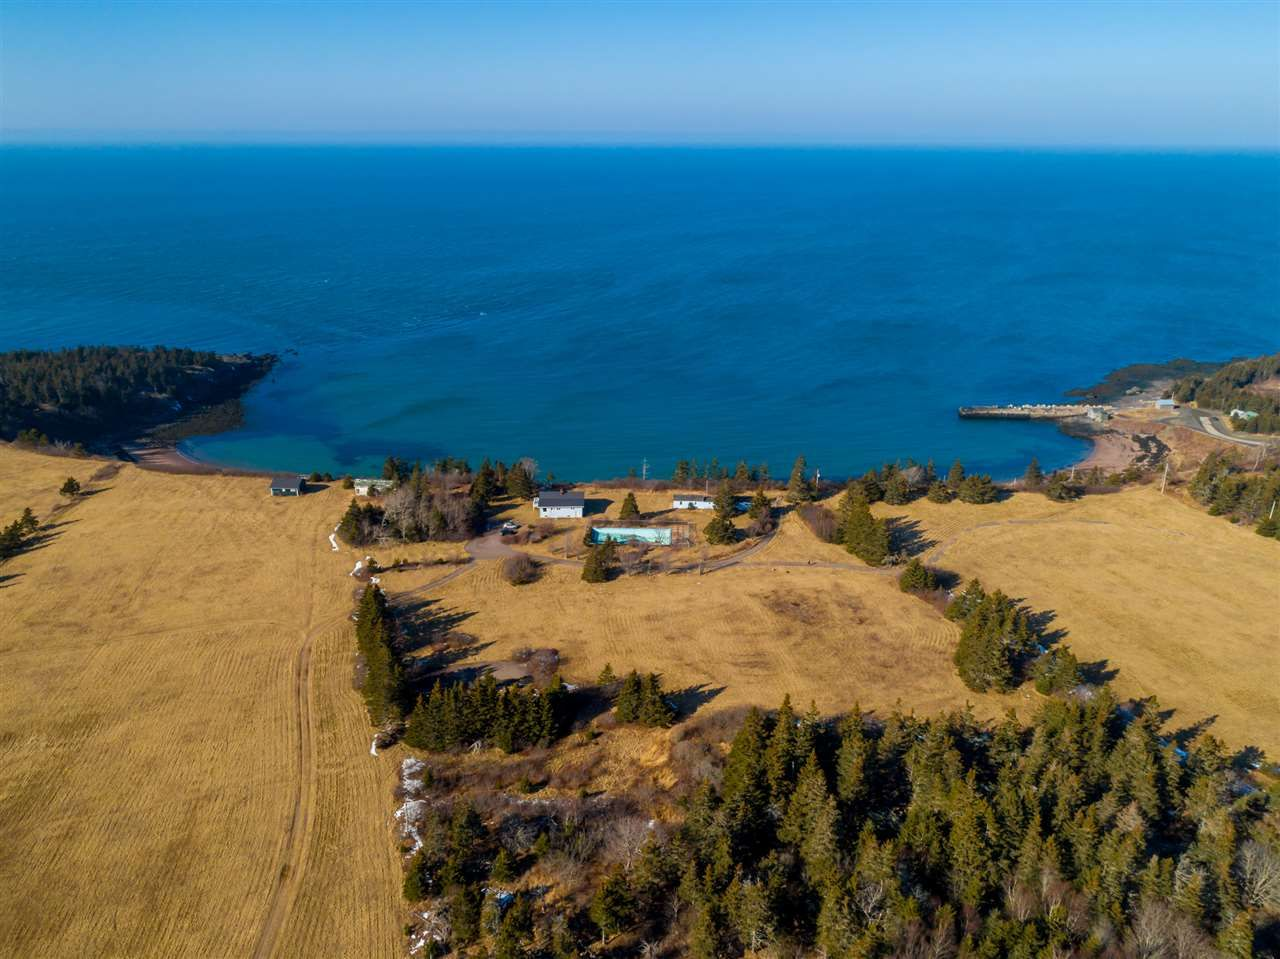 Main Photo: 103 champlain Road in Sandy Cove: 401-Digby County Residential for sale (Annapolis Valley)  : MLS®# 202001956